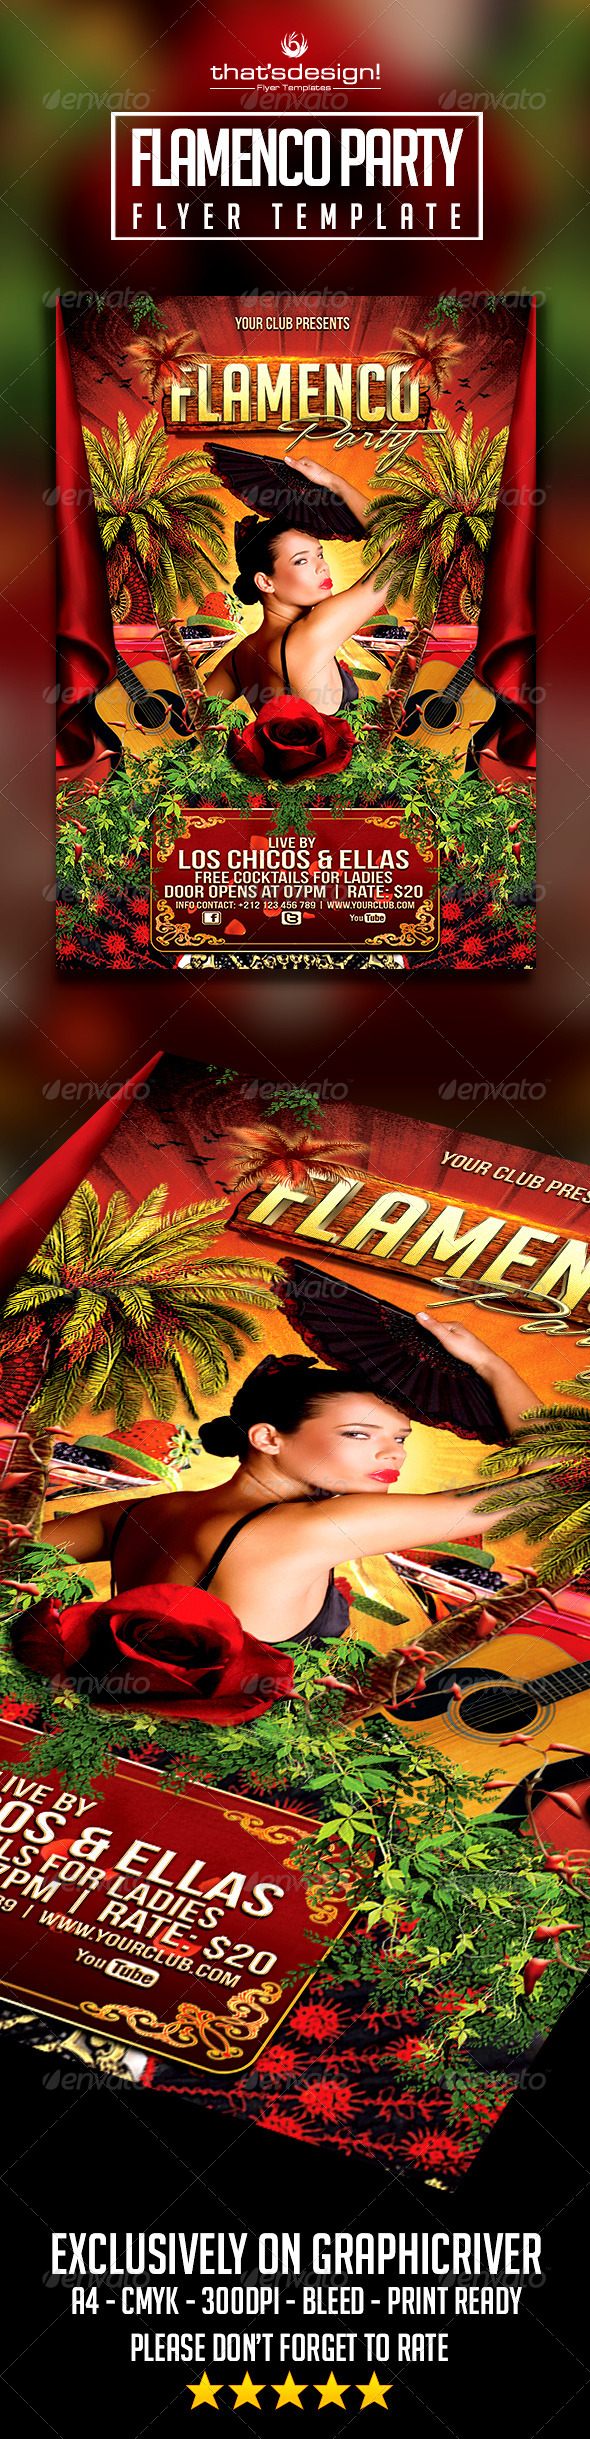 Flamenco Party Flyer - Clubs & Parties Events